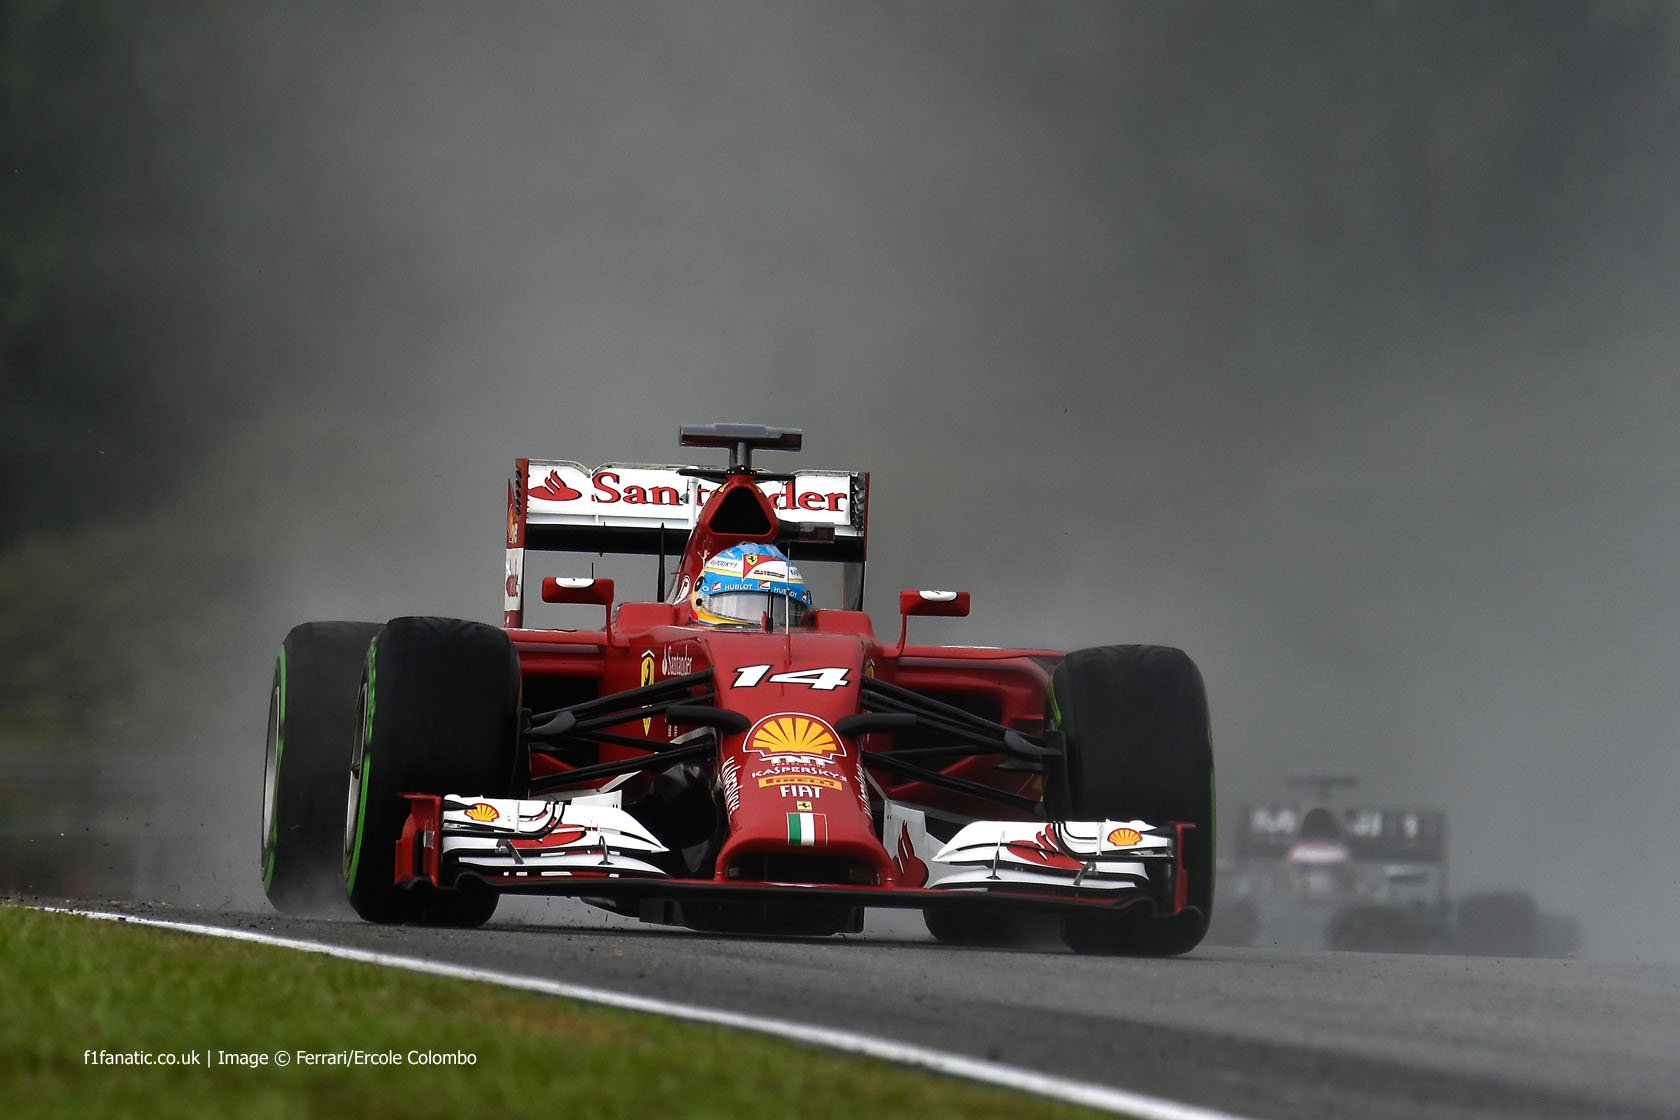 Fernando Alonso, Ferrari, Sepang International Circuit, 2014